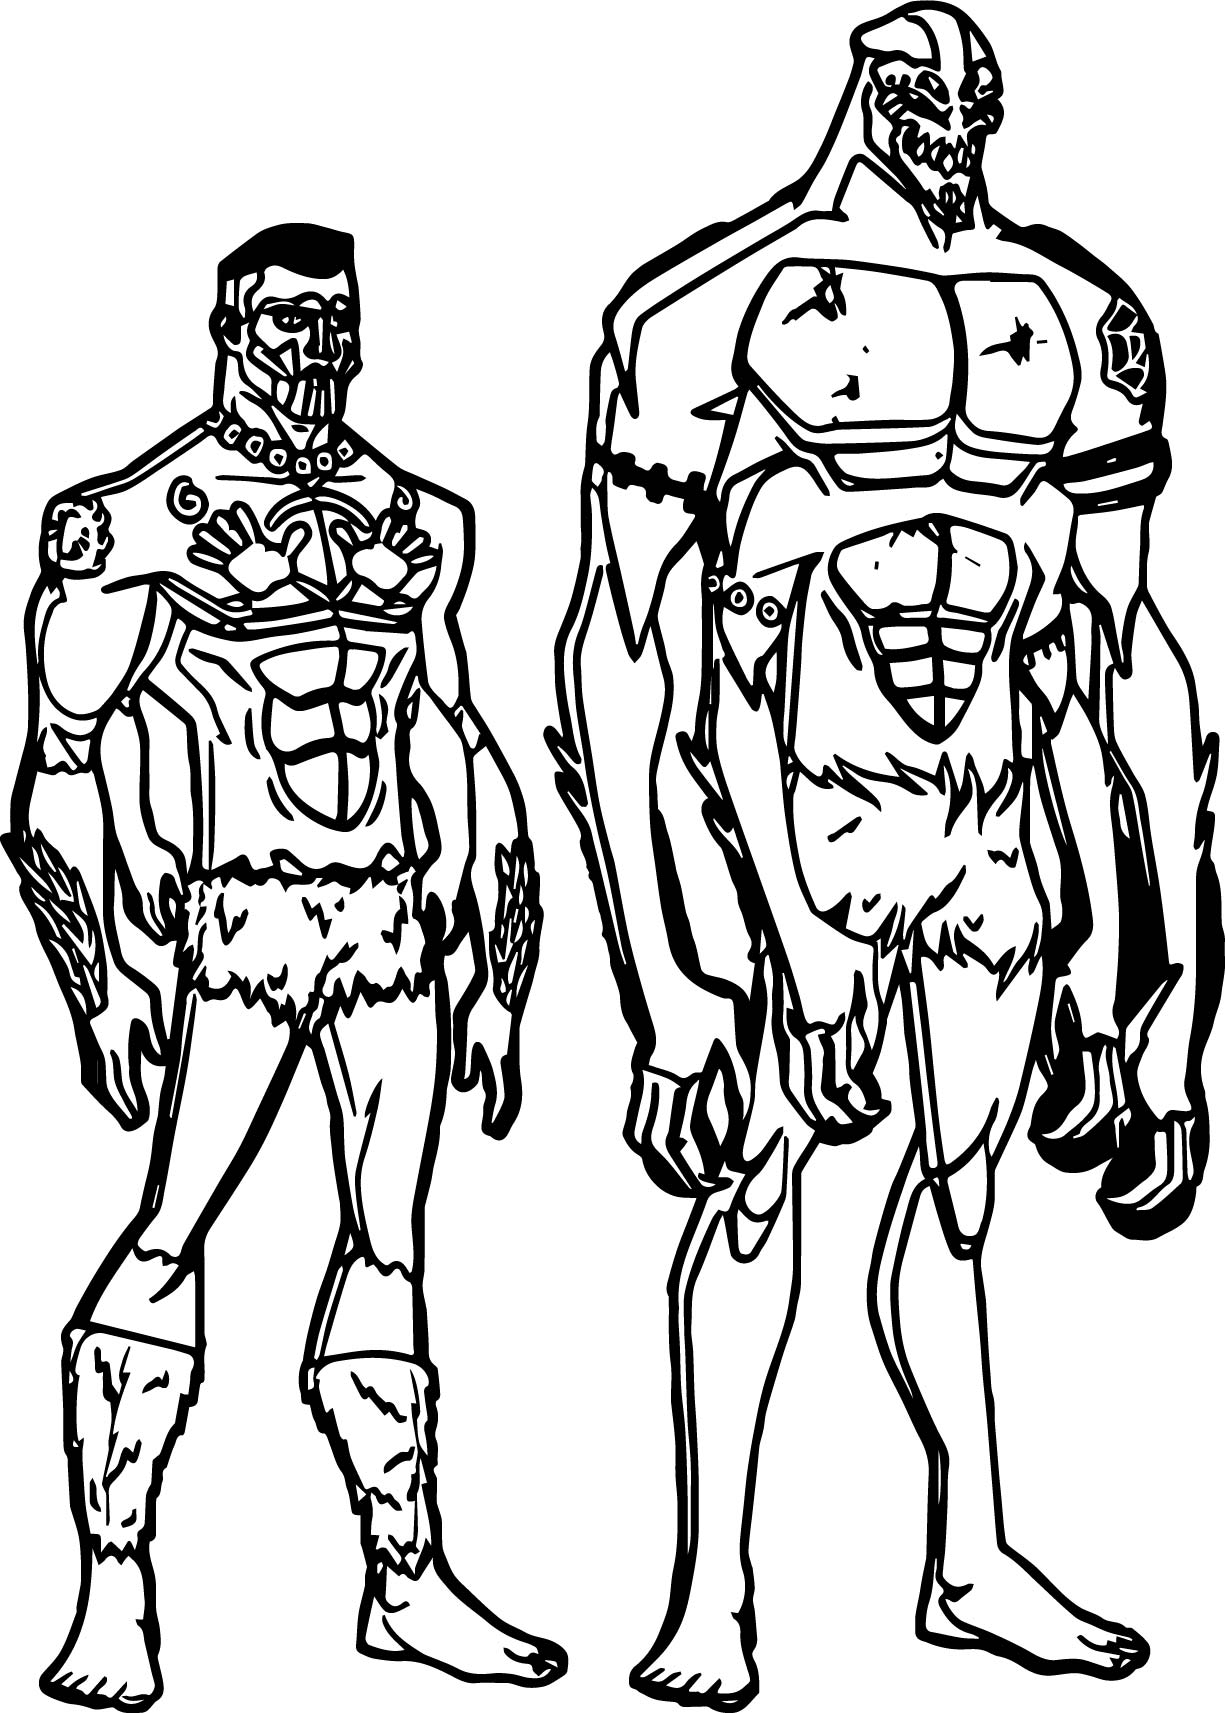 Anansi man coloring page for Anansi the spider coloring pages